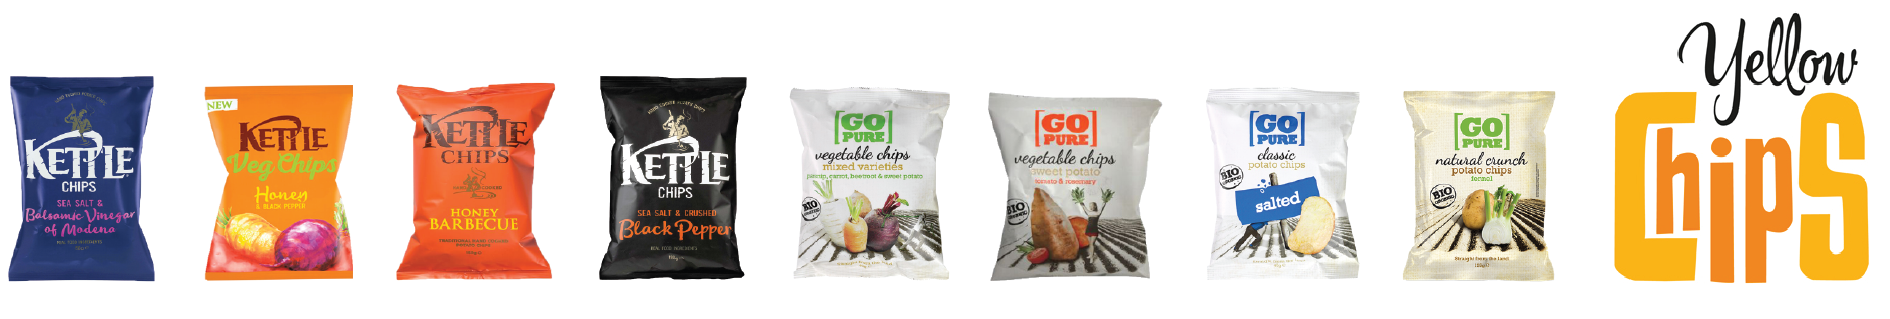 Kettle Chips Go Pure Chips product impression